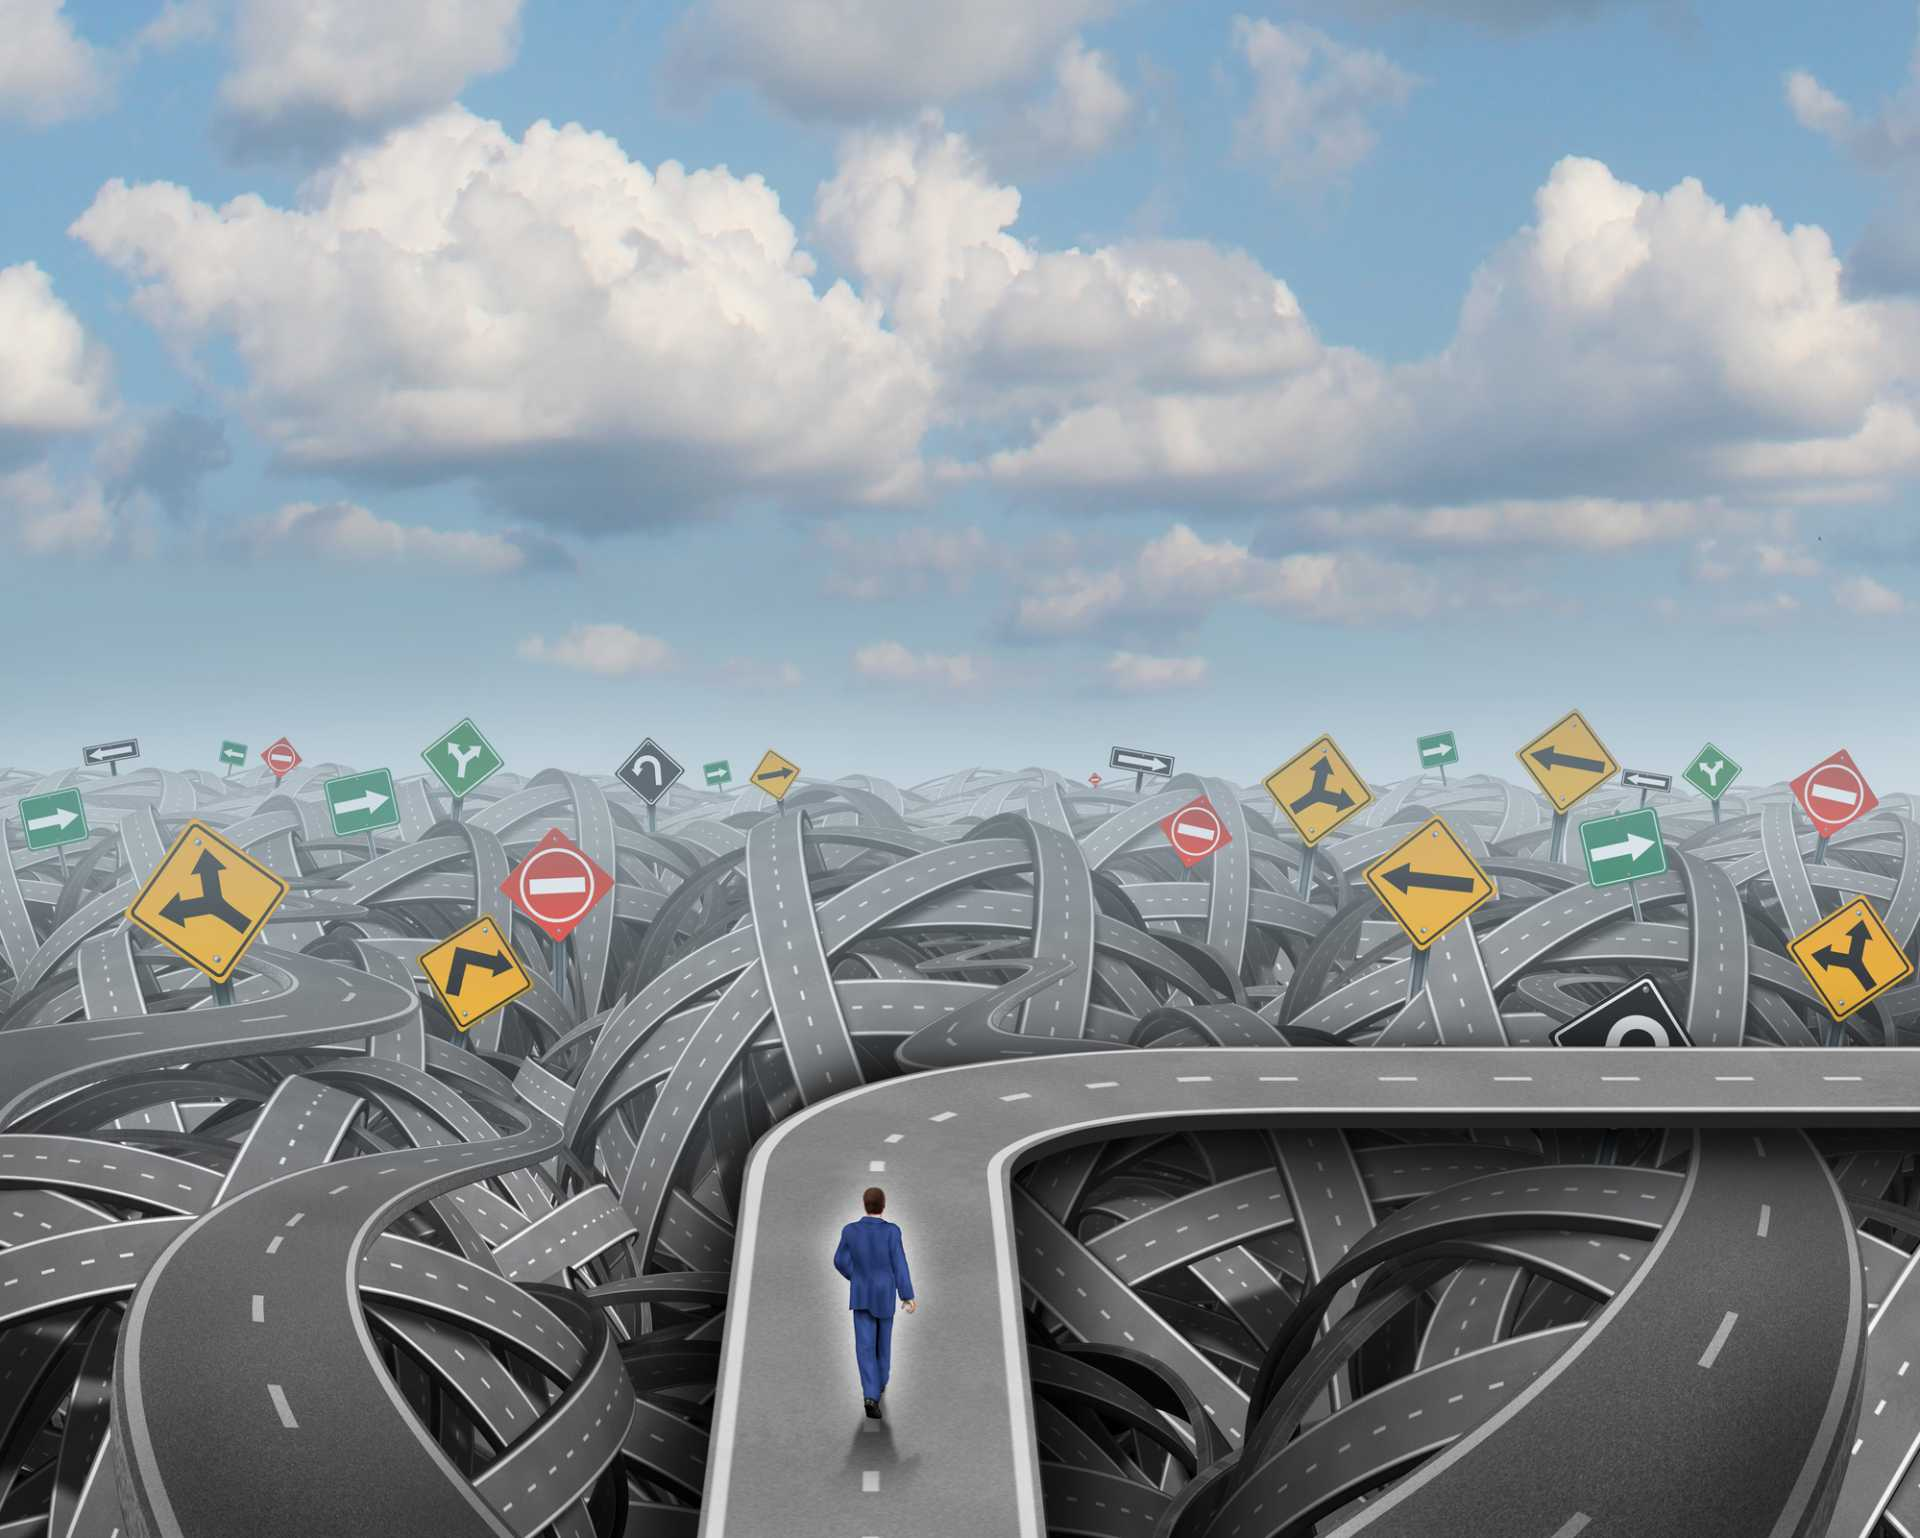 Confusion Road Puzzle Challenge - image courtesy of Depositphotos.